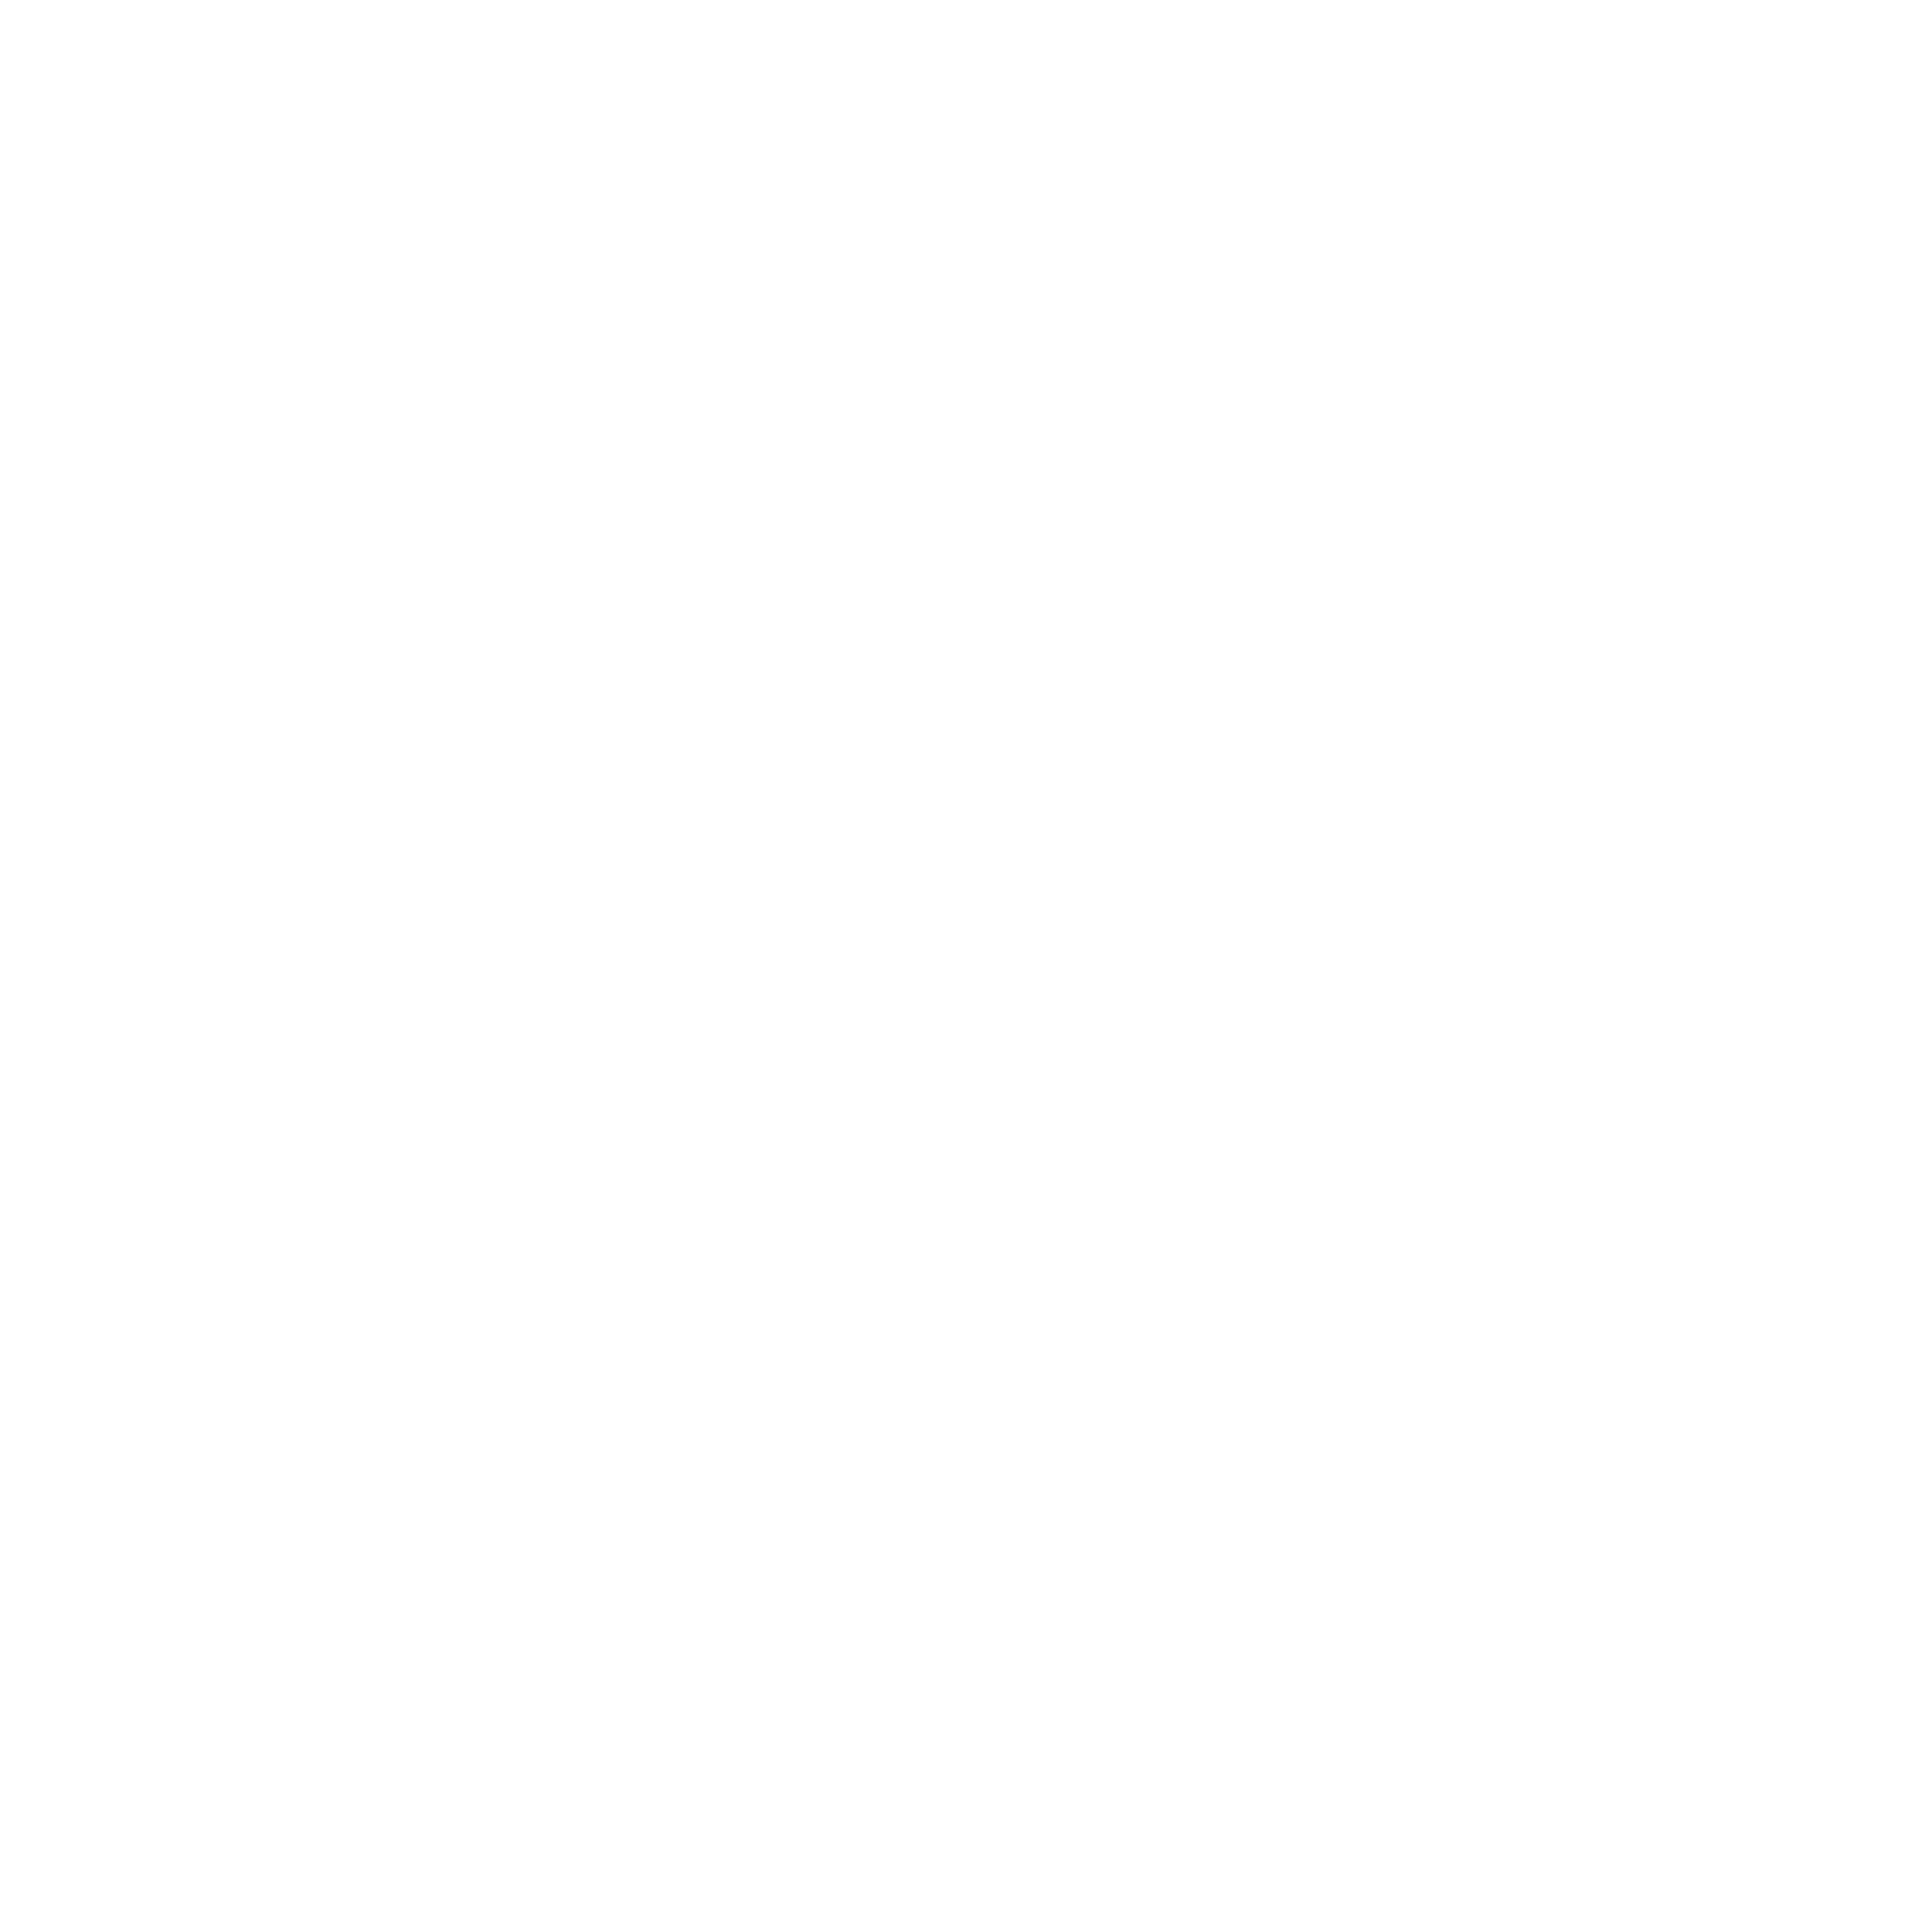 White lace frame png. Border transparent image gallery